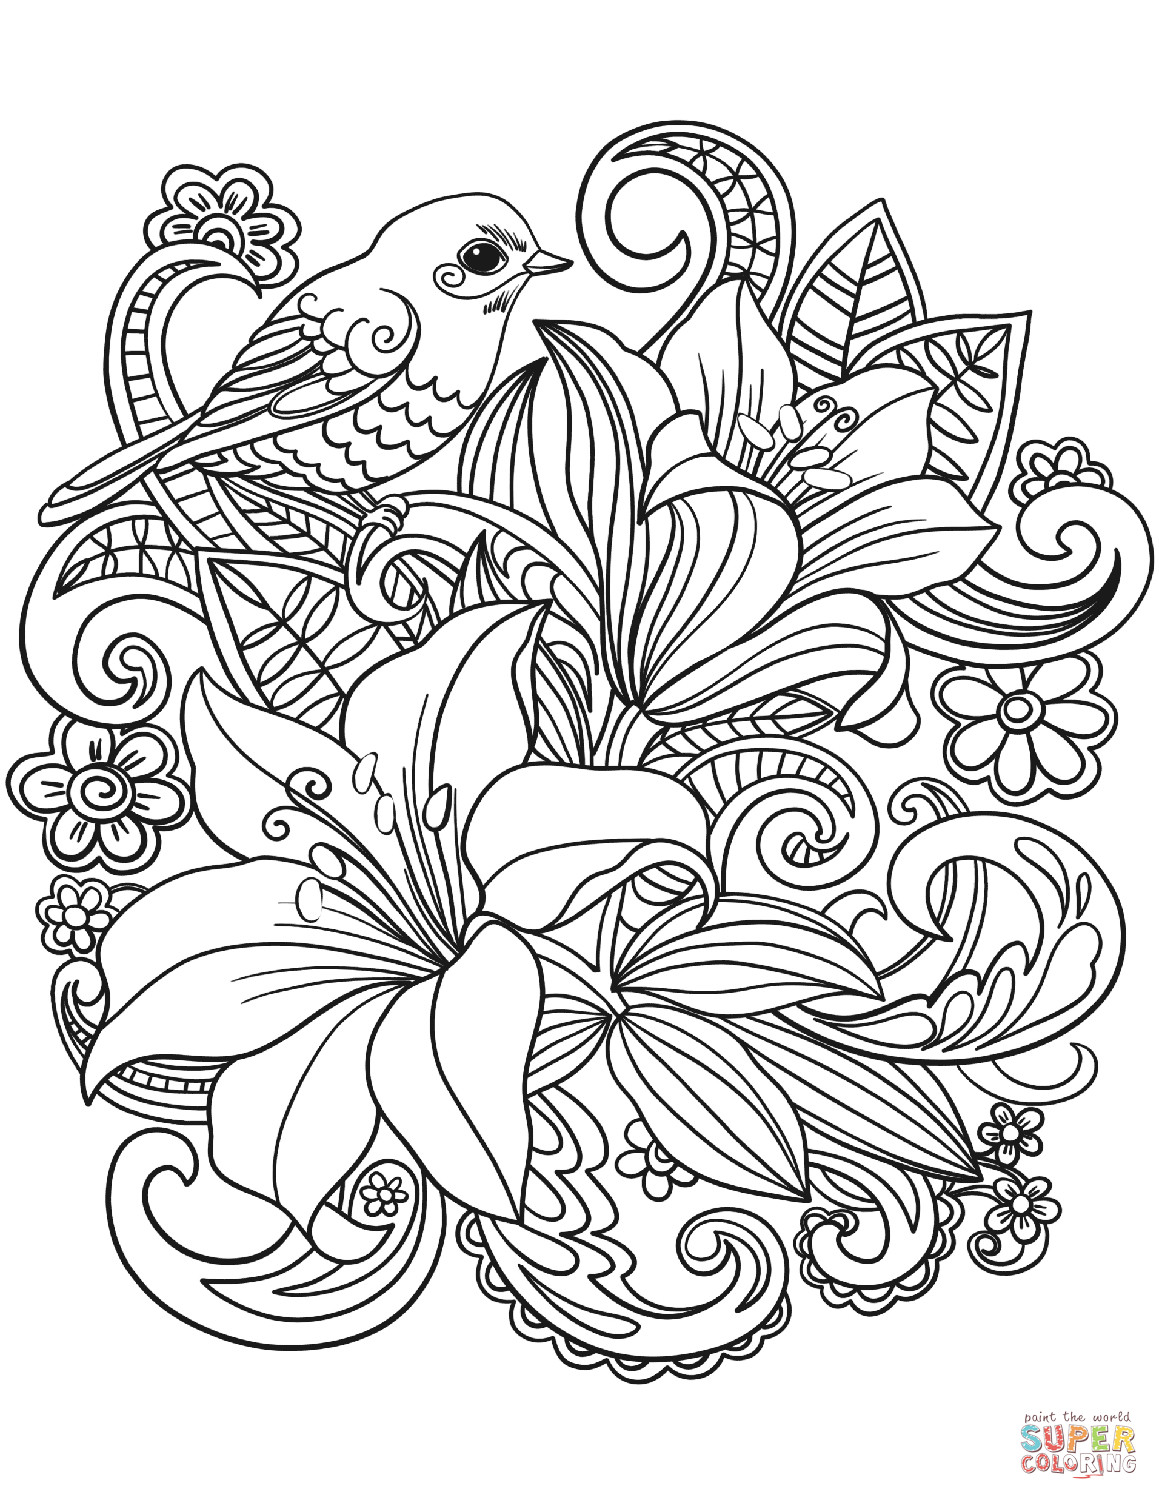 Best ideas about Flower Coloring Sheets For Girls . Save or Pin Skylark and Flowers coloring page Now.